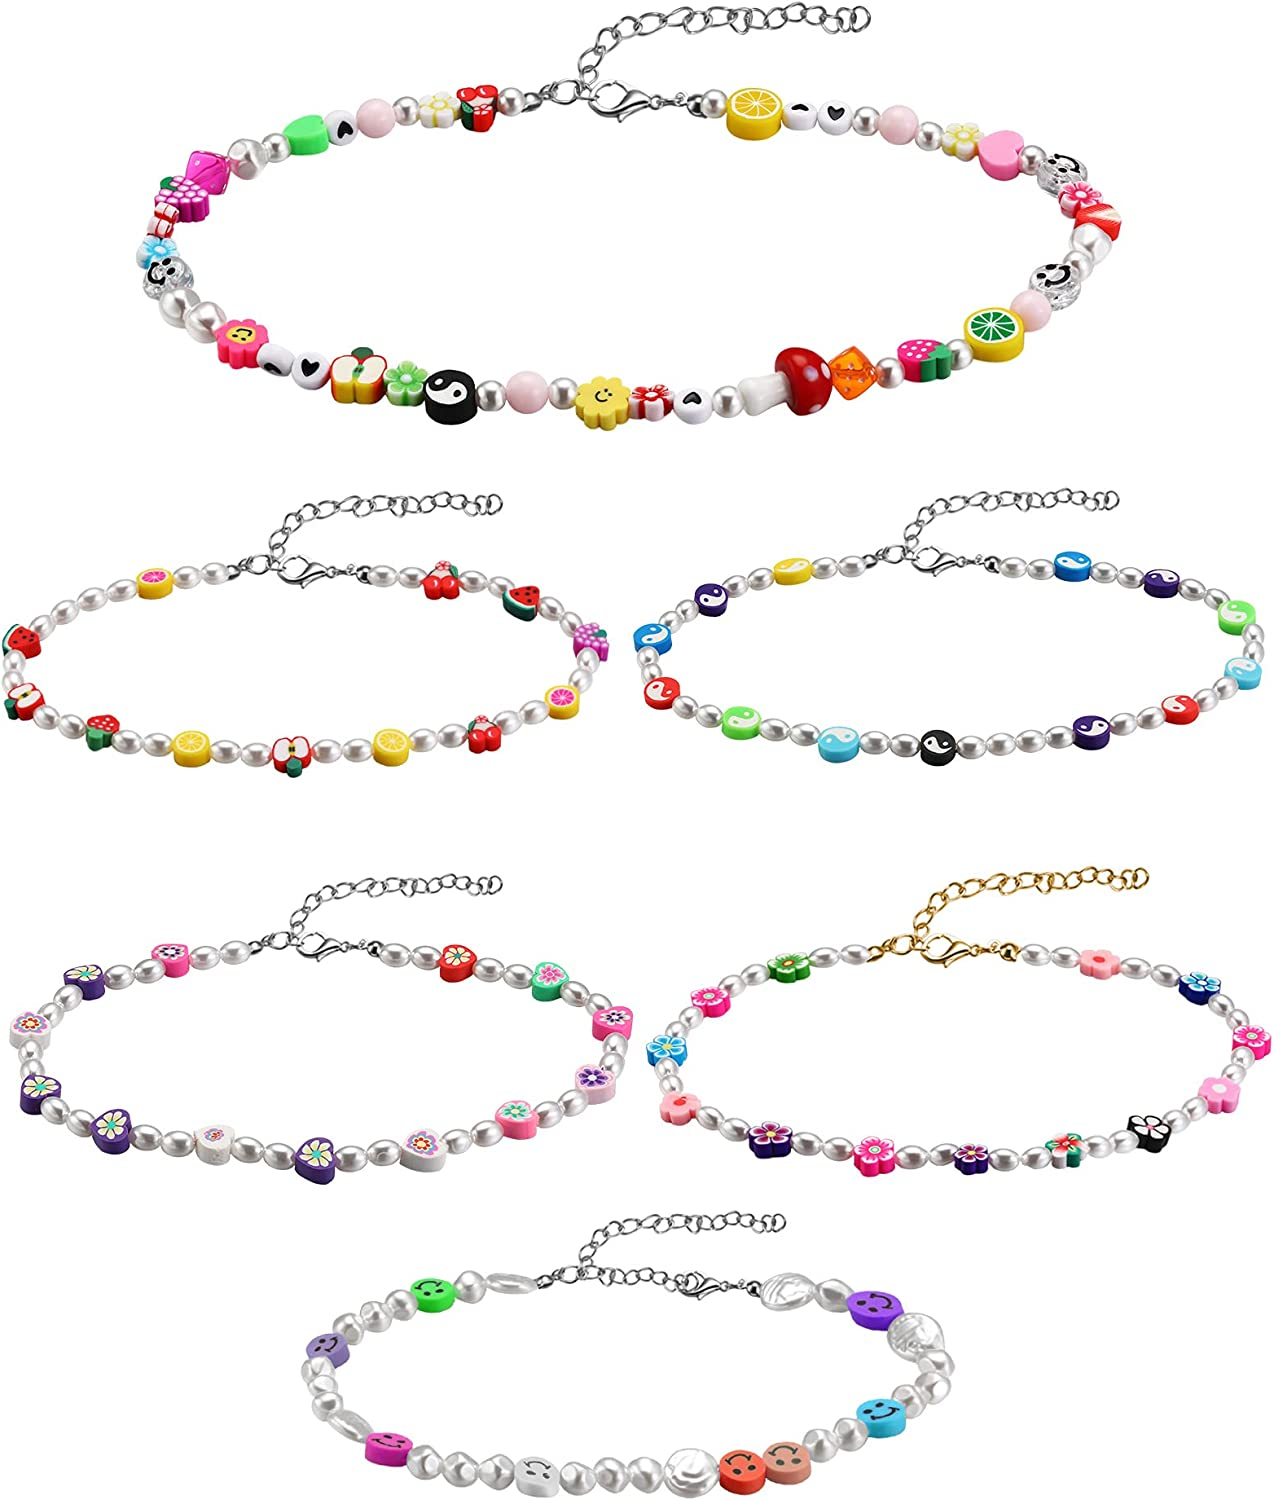 6 Pieces Beaded Choker Necklaces Y2k Seed Bead Necklace Flower Fruit Tai Chi Pearl Boho Necklace Handmade Colorful Summer Beach Chain Jewelry Set for Women Girls